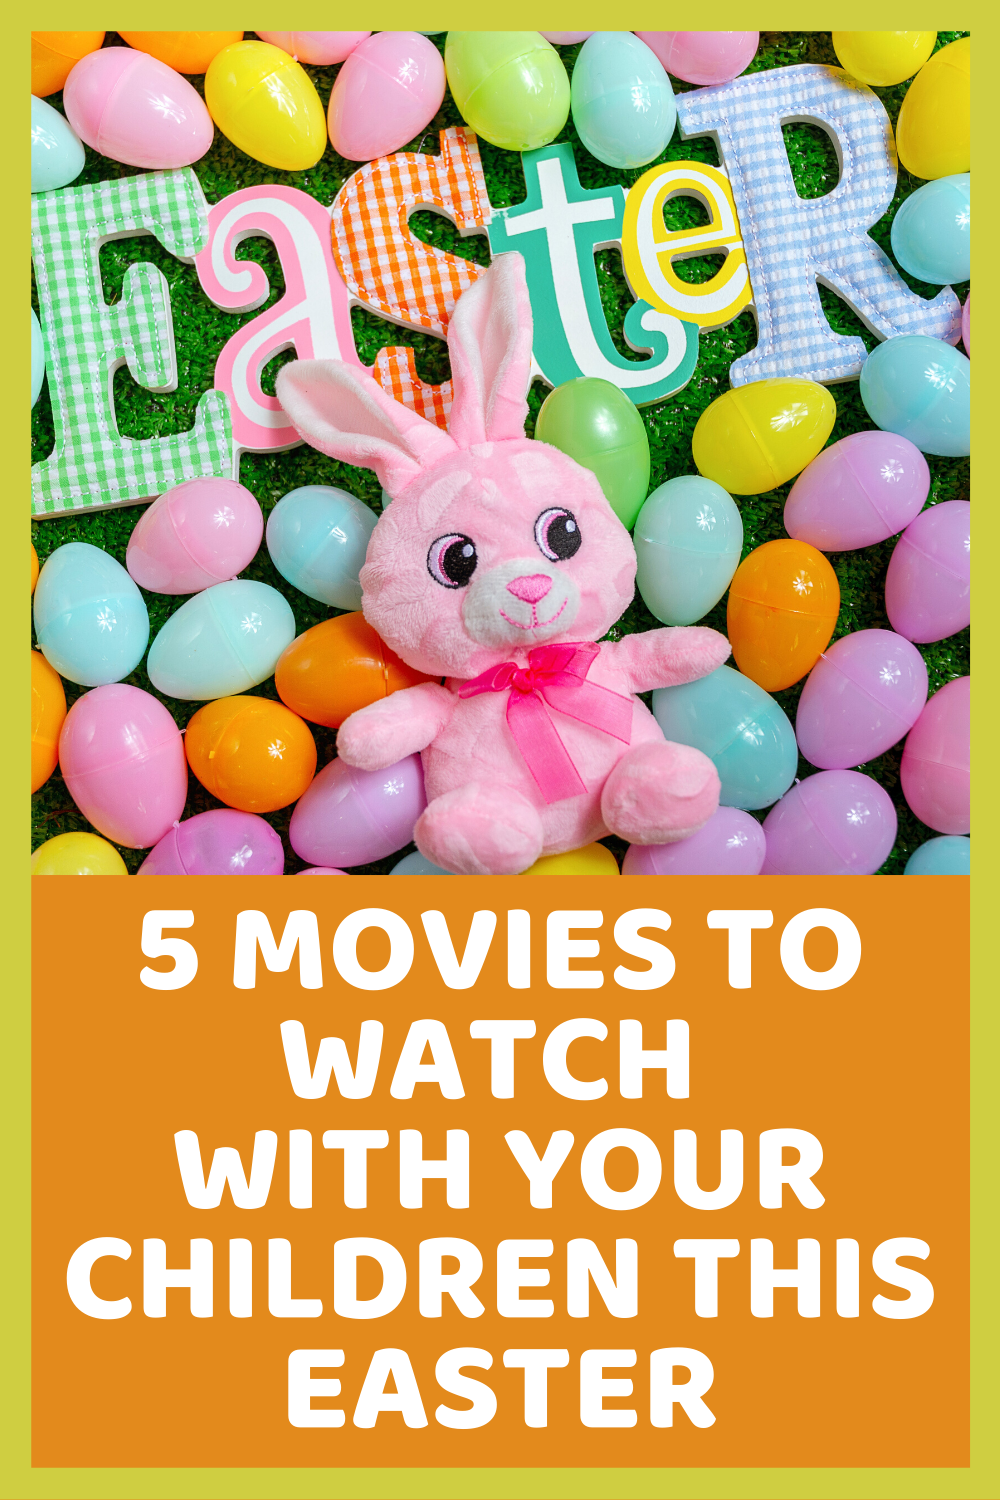 5 Movies To Watch With Your Children This Easter